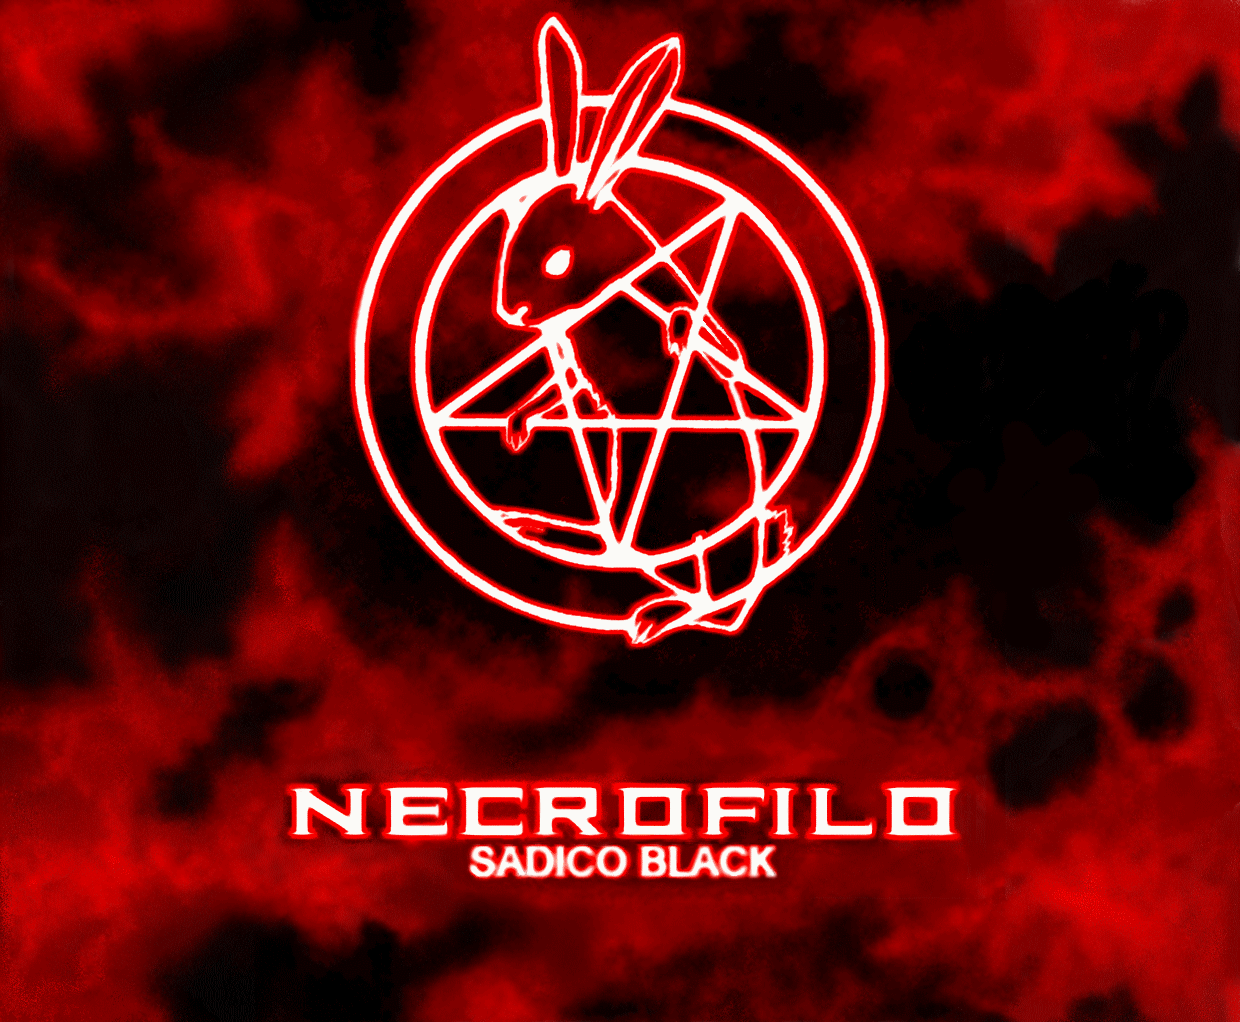 File:Necrofilo Sádico Black PNG - Wikimedia Commons